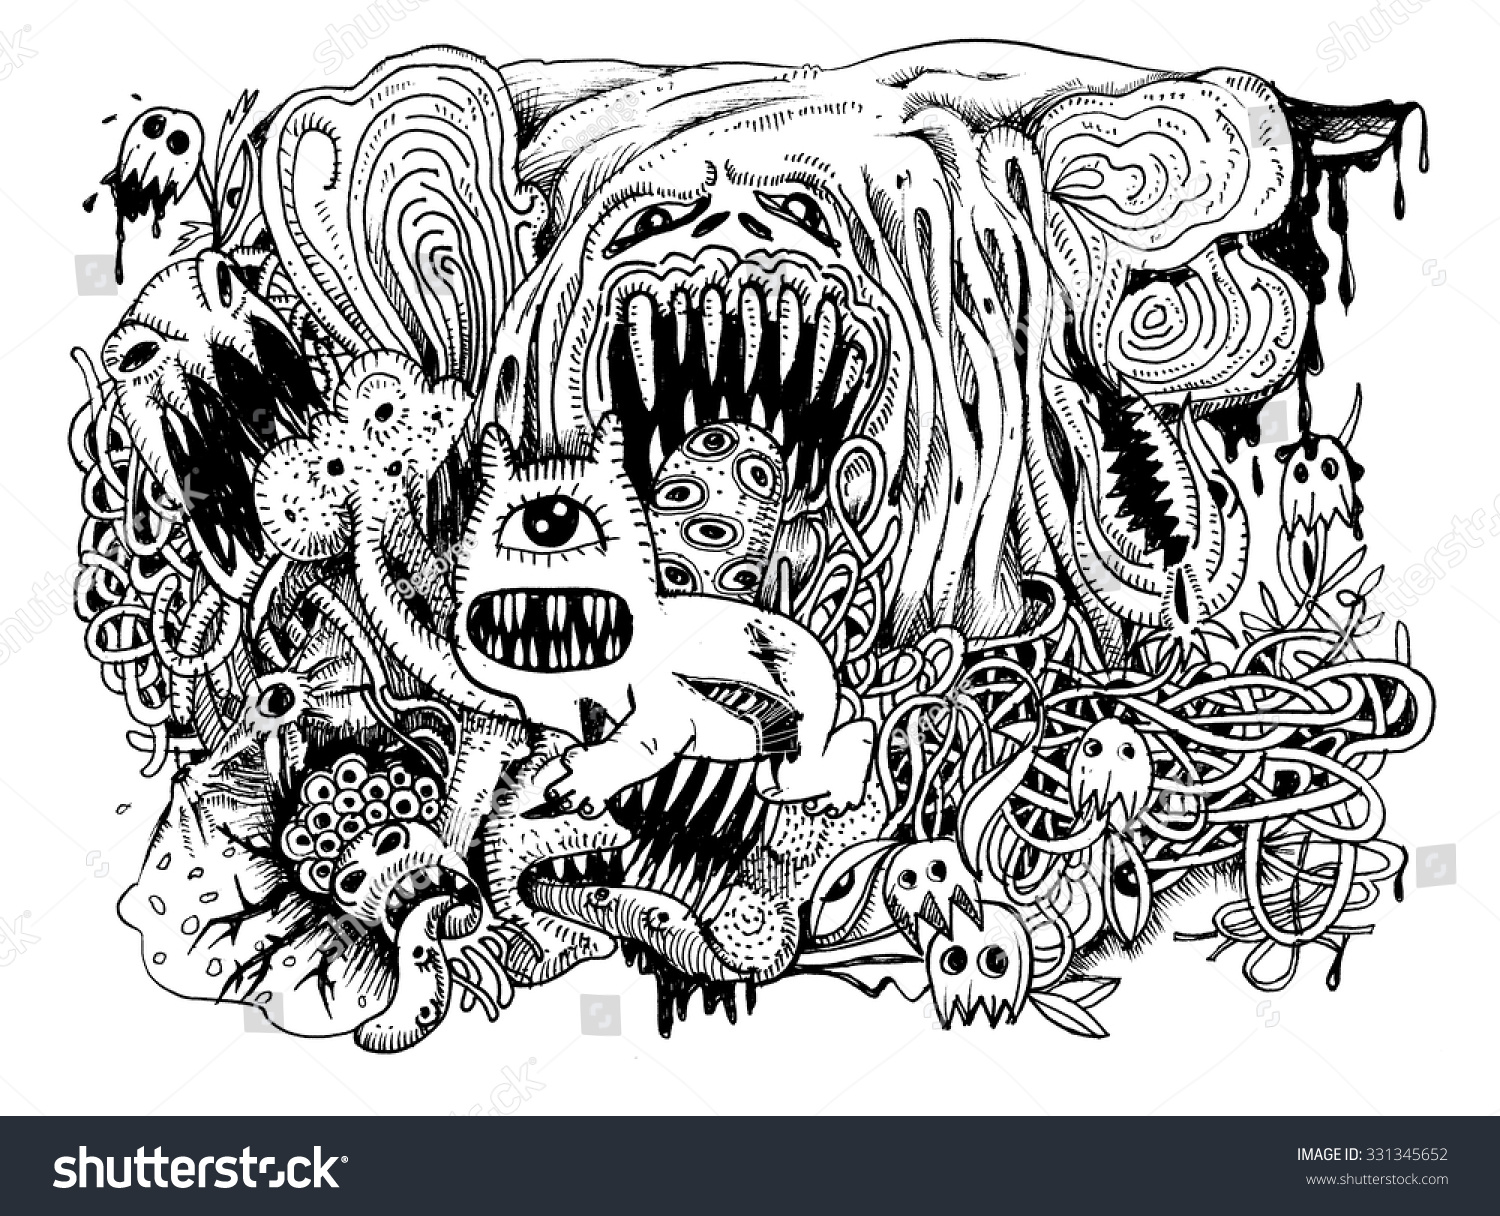 Line Drawing Monster : Monster drawinghand drawn combination linesvector